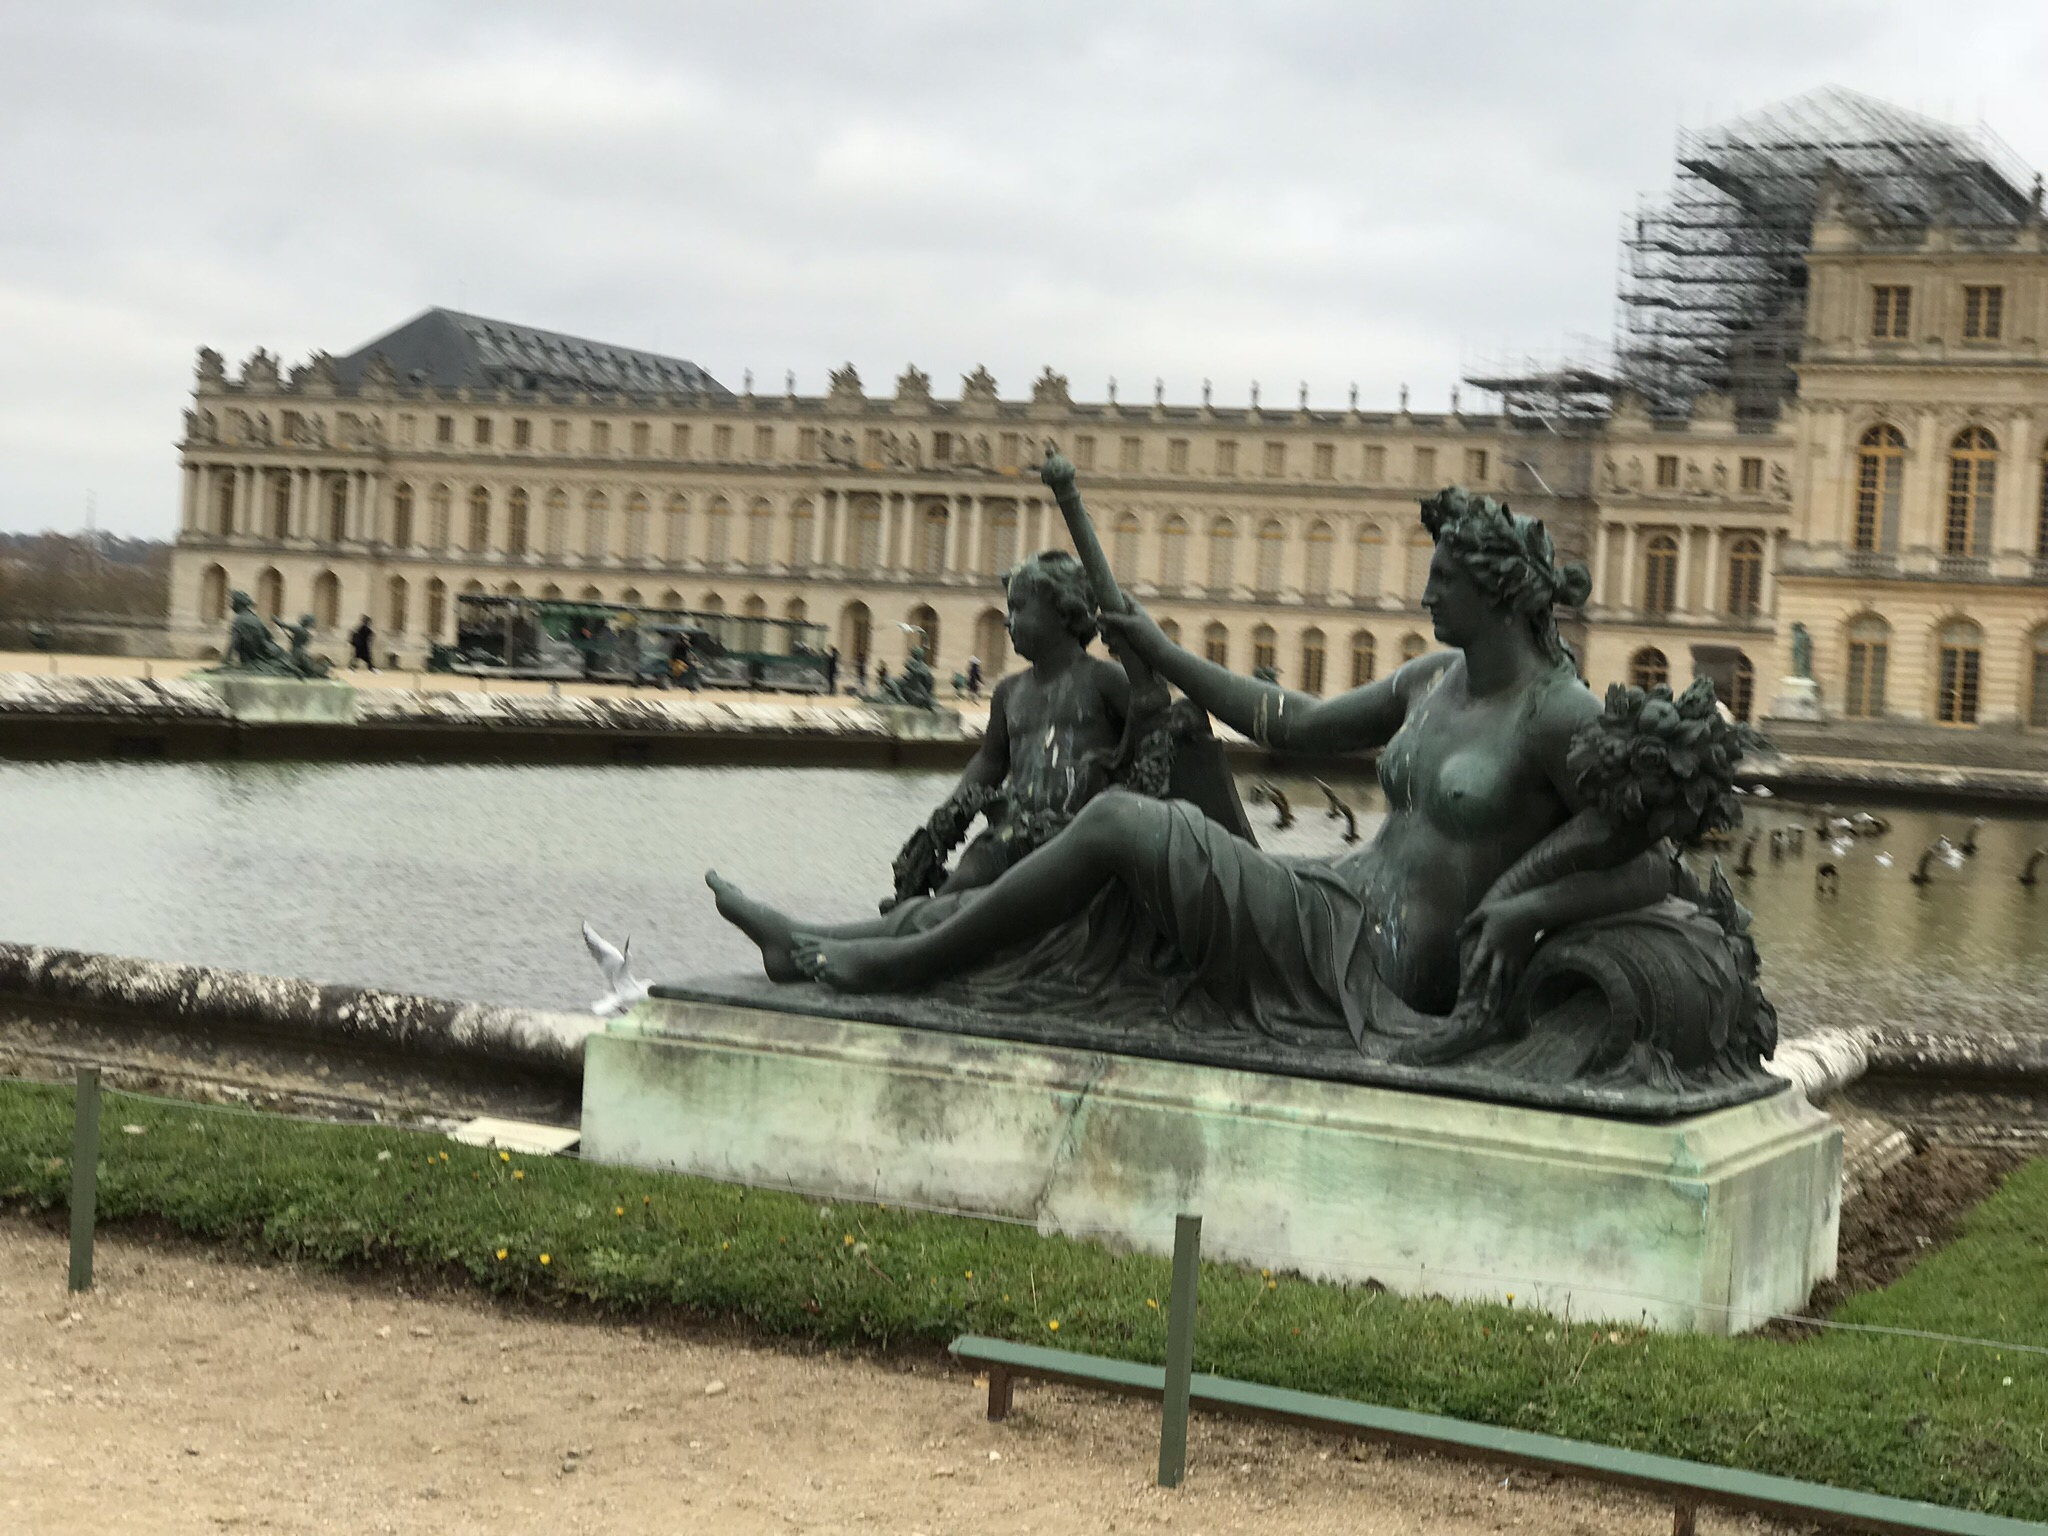 The Versailles gardens are enormous and absolutely gorgeous. The statues all around the acres of gardens are so realistic and life-like. Their perfection is admirable, even on a cloudy winter afternoon.